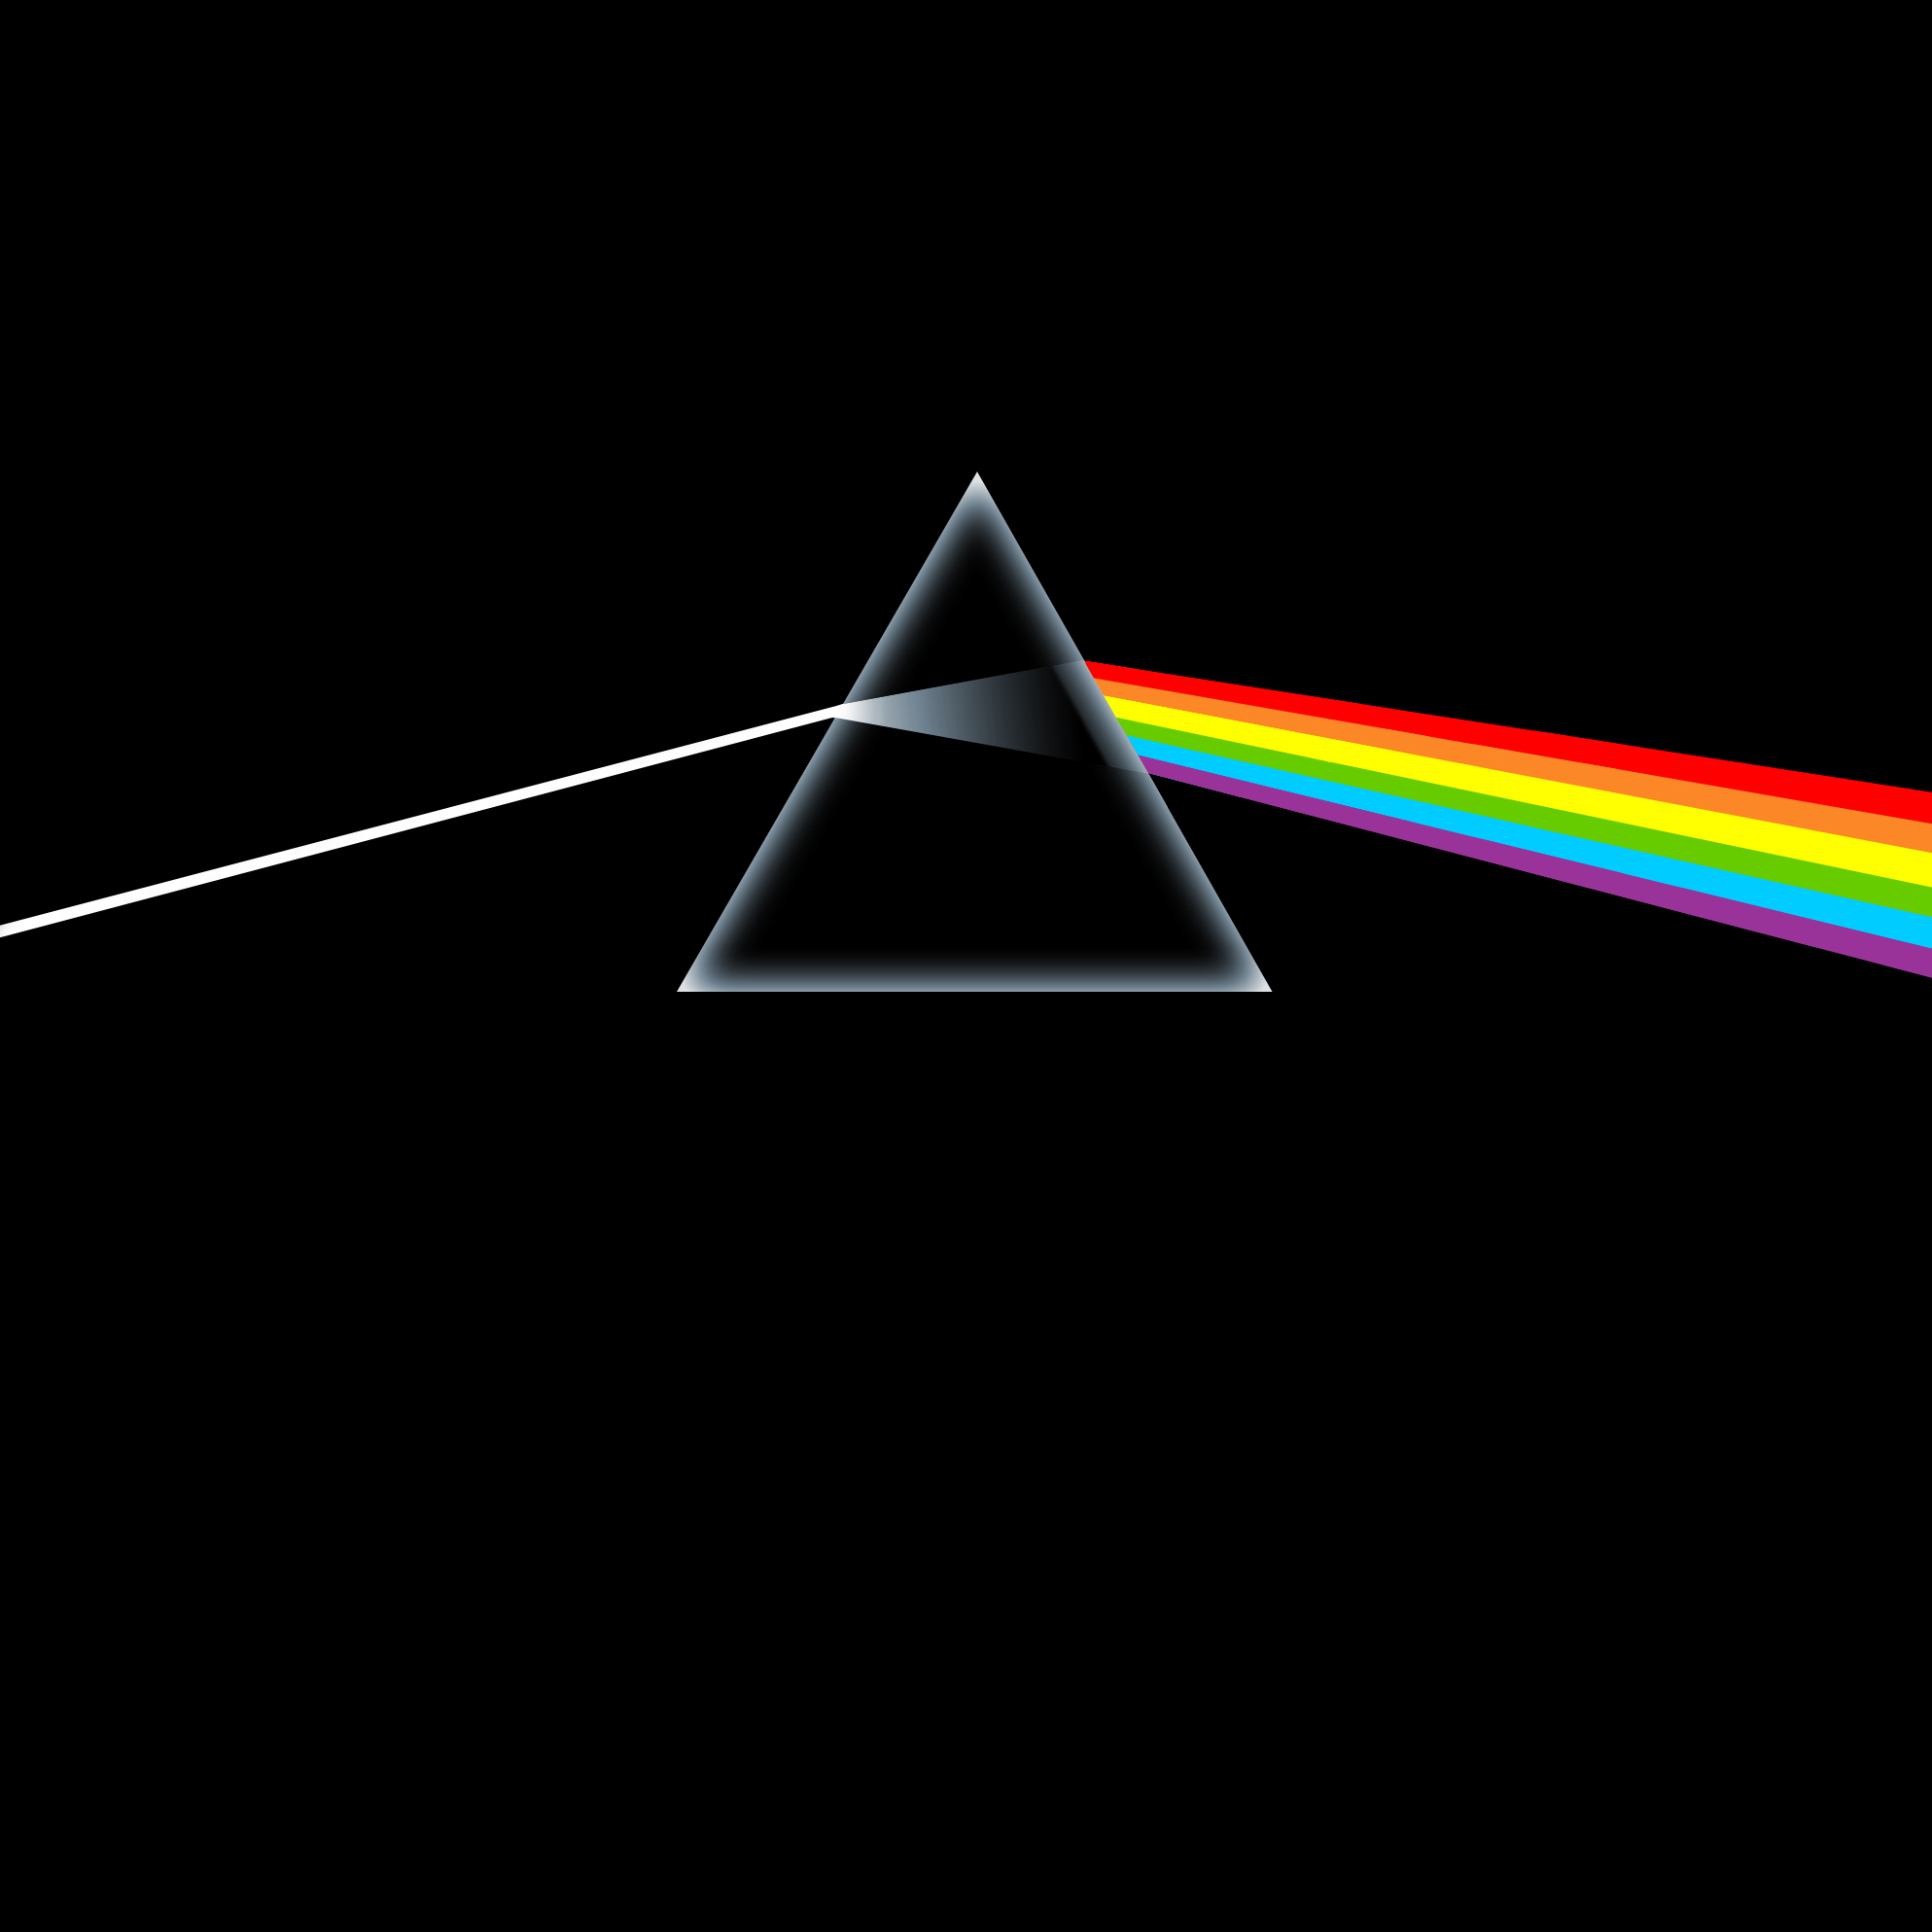 http://www.austinchronicle.com/binary/1f6d/Pink_Floyd_-_Dark_side_of_the_moon.jpg